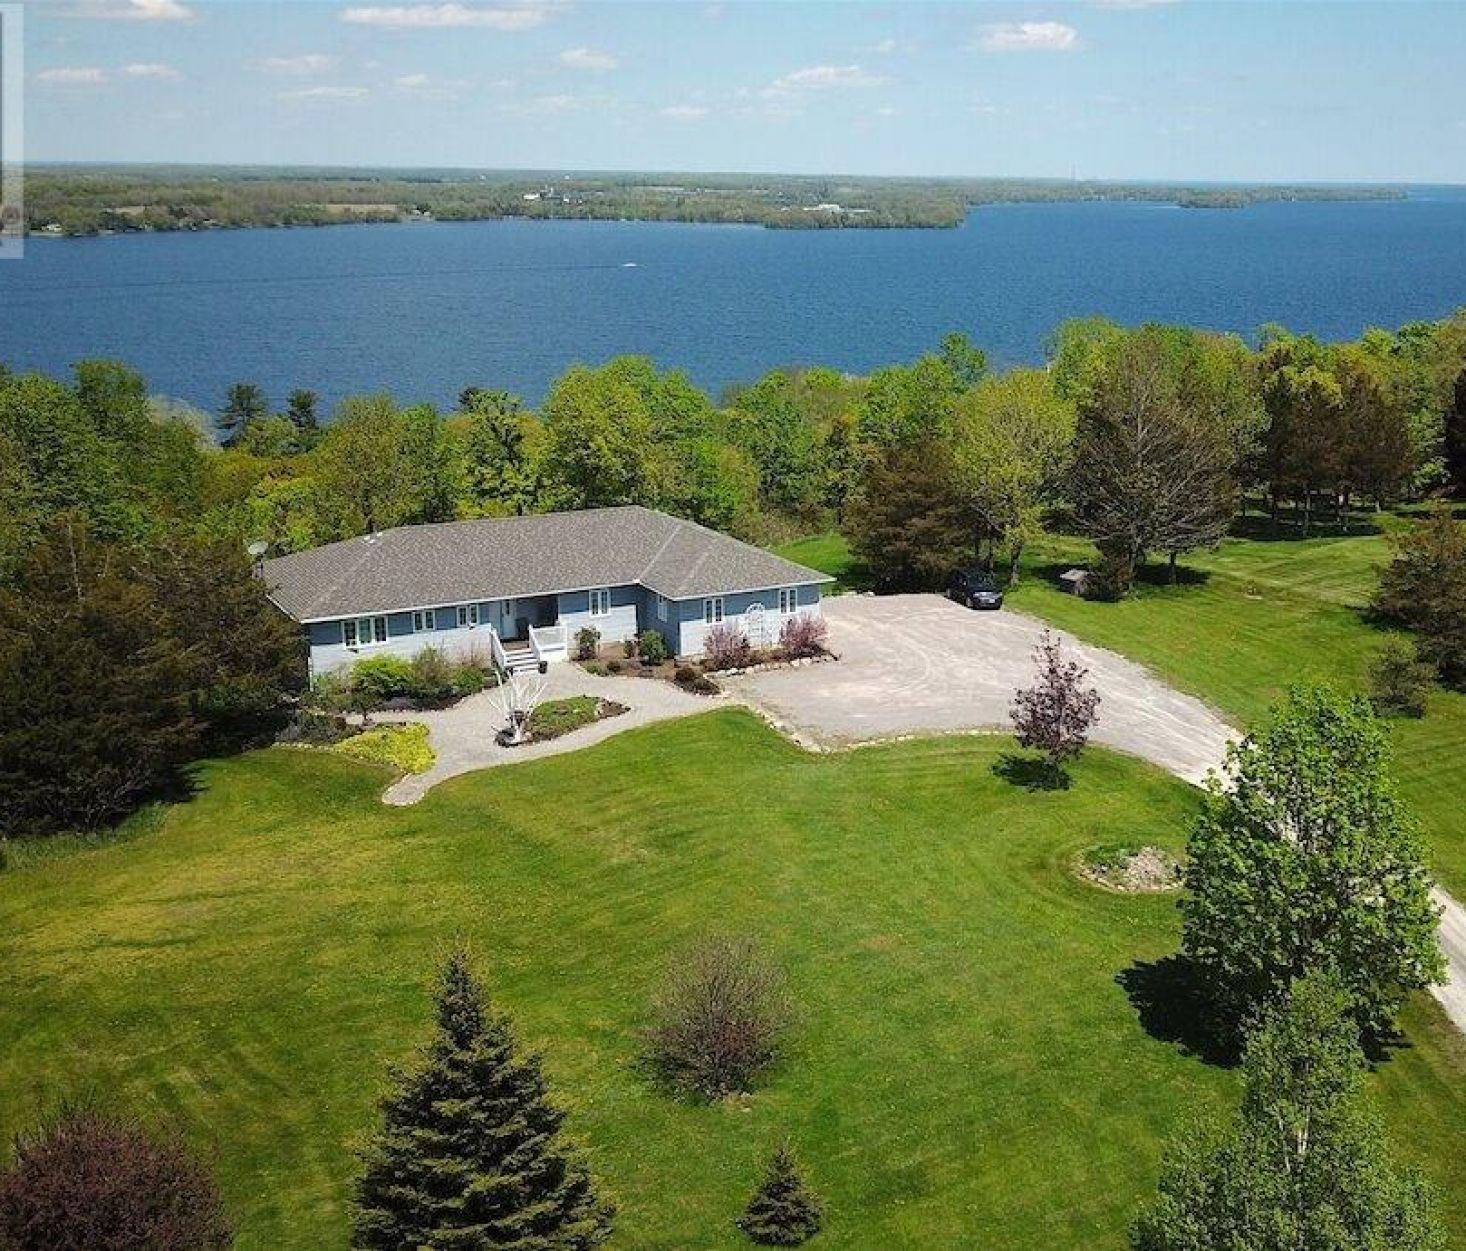 539 COUNTY RD 7 ROAD, Prince Edward County***SOLD***